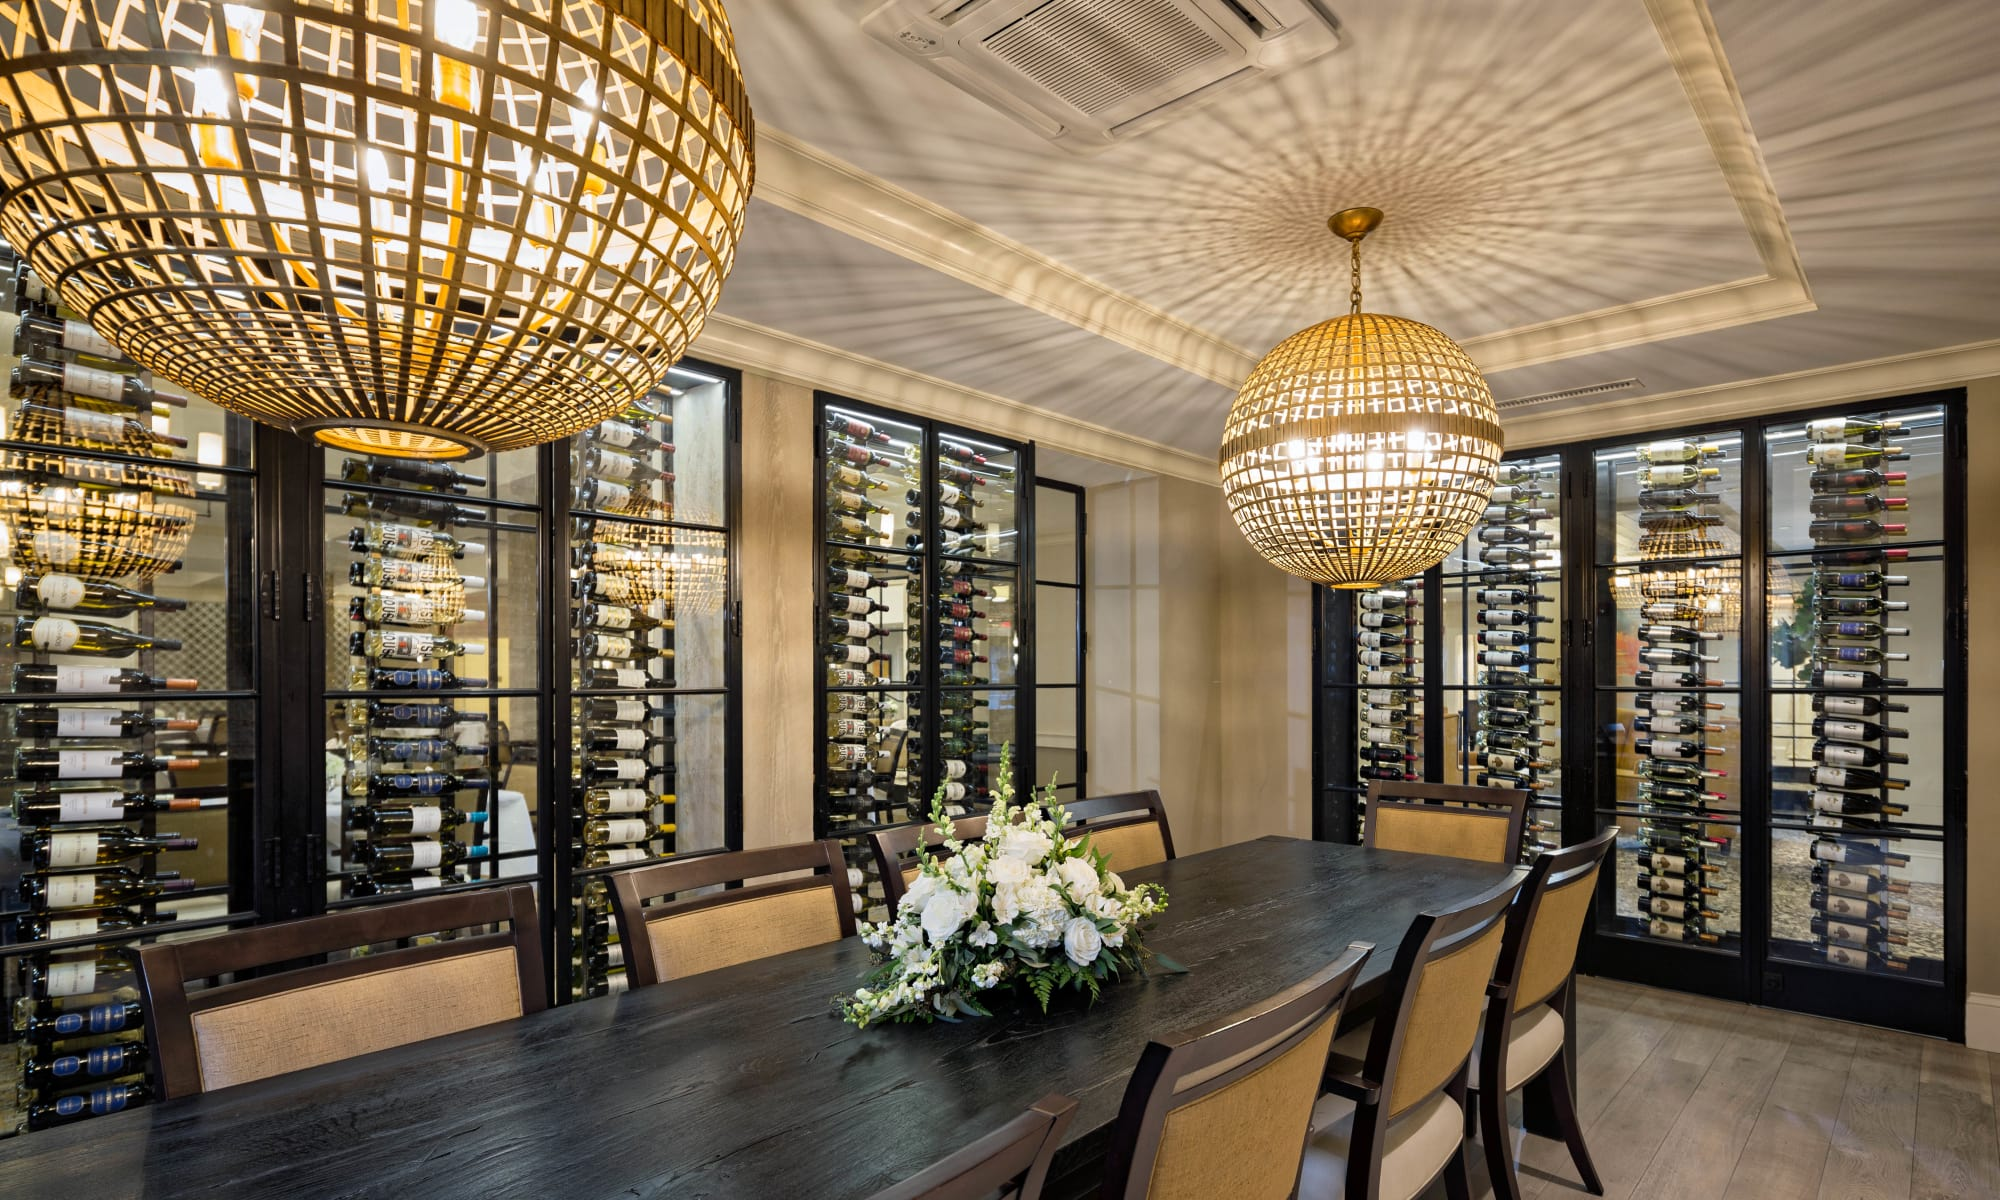 Our beautiful clubhouse in Weston, Massachusetts showcase a luxurious dining room